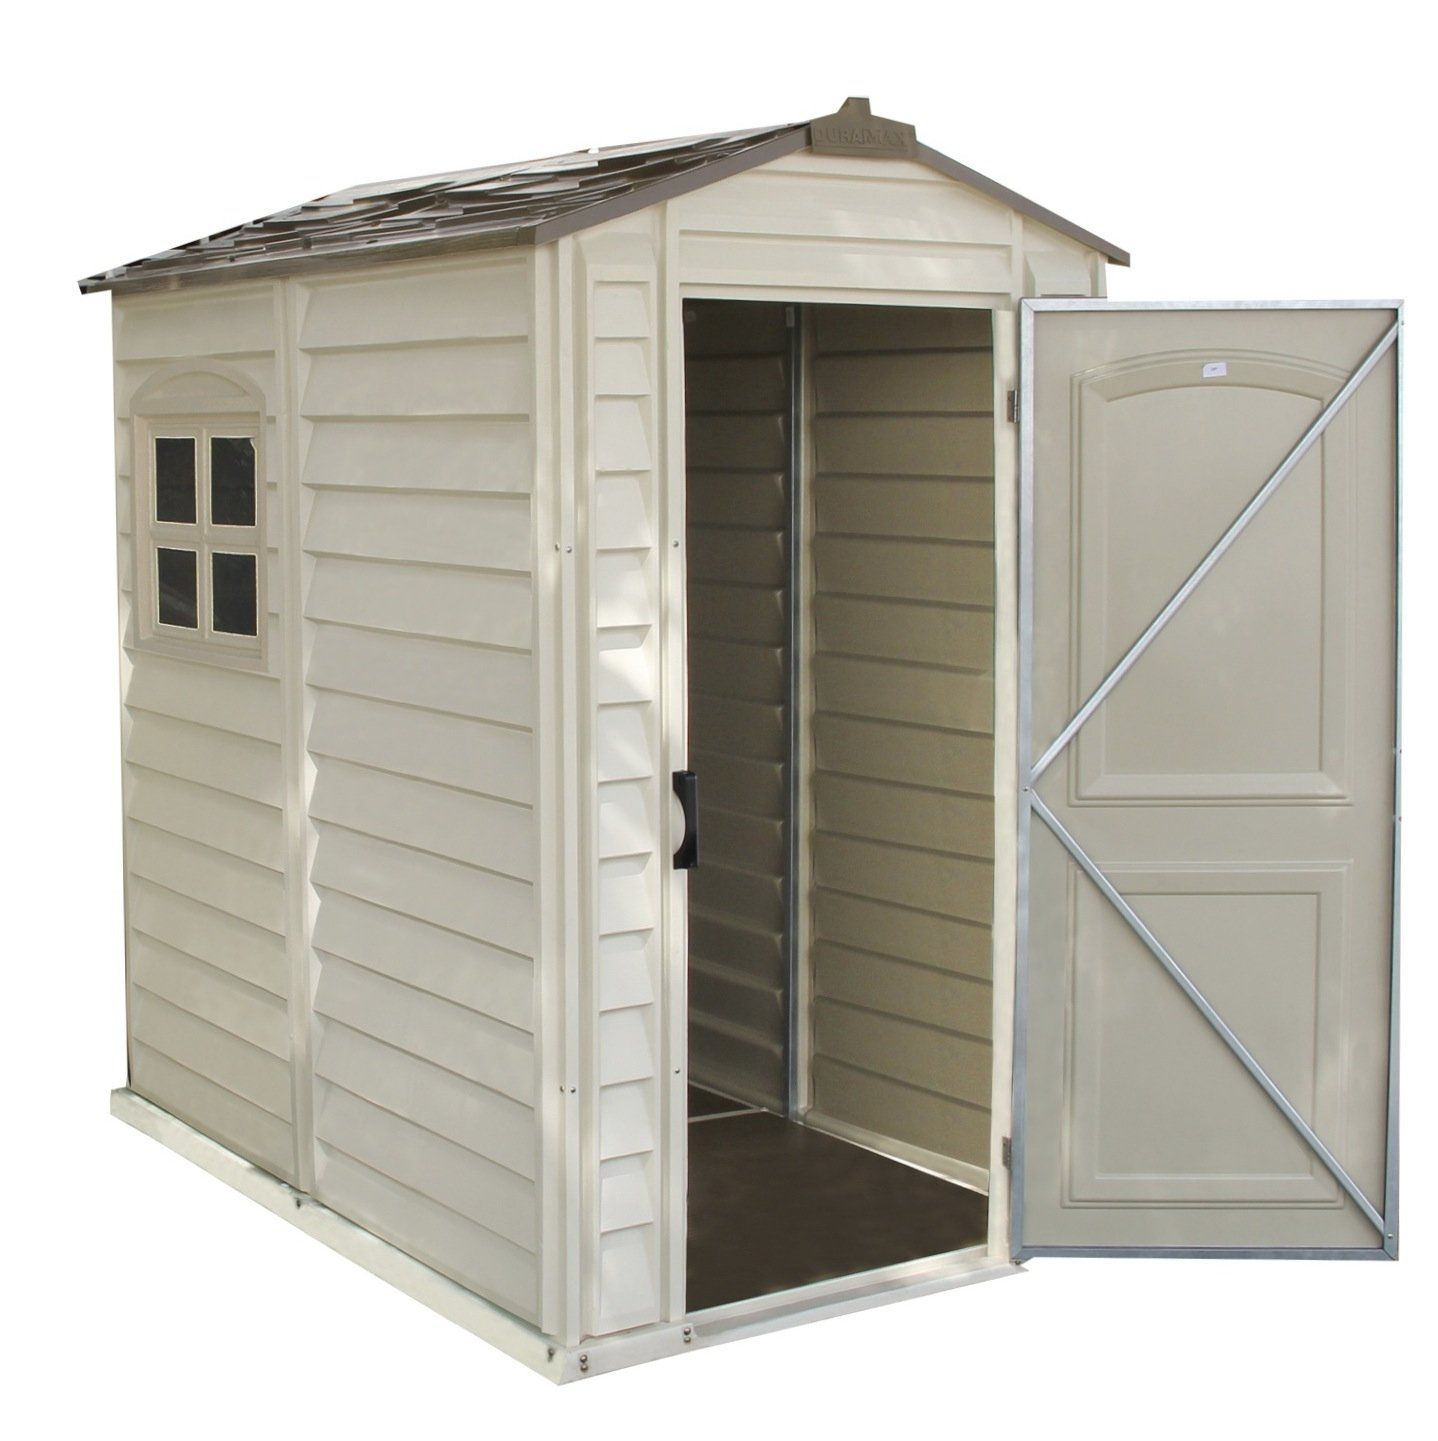 Duramax 30621 StorePro Vinyl Shed with Floor